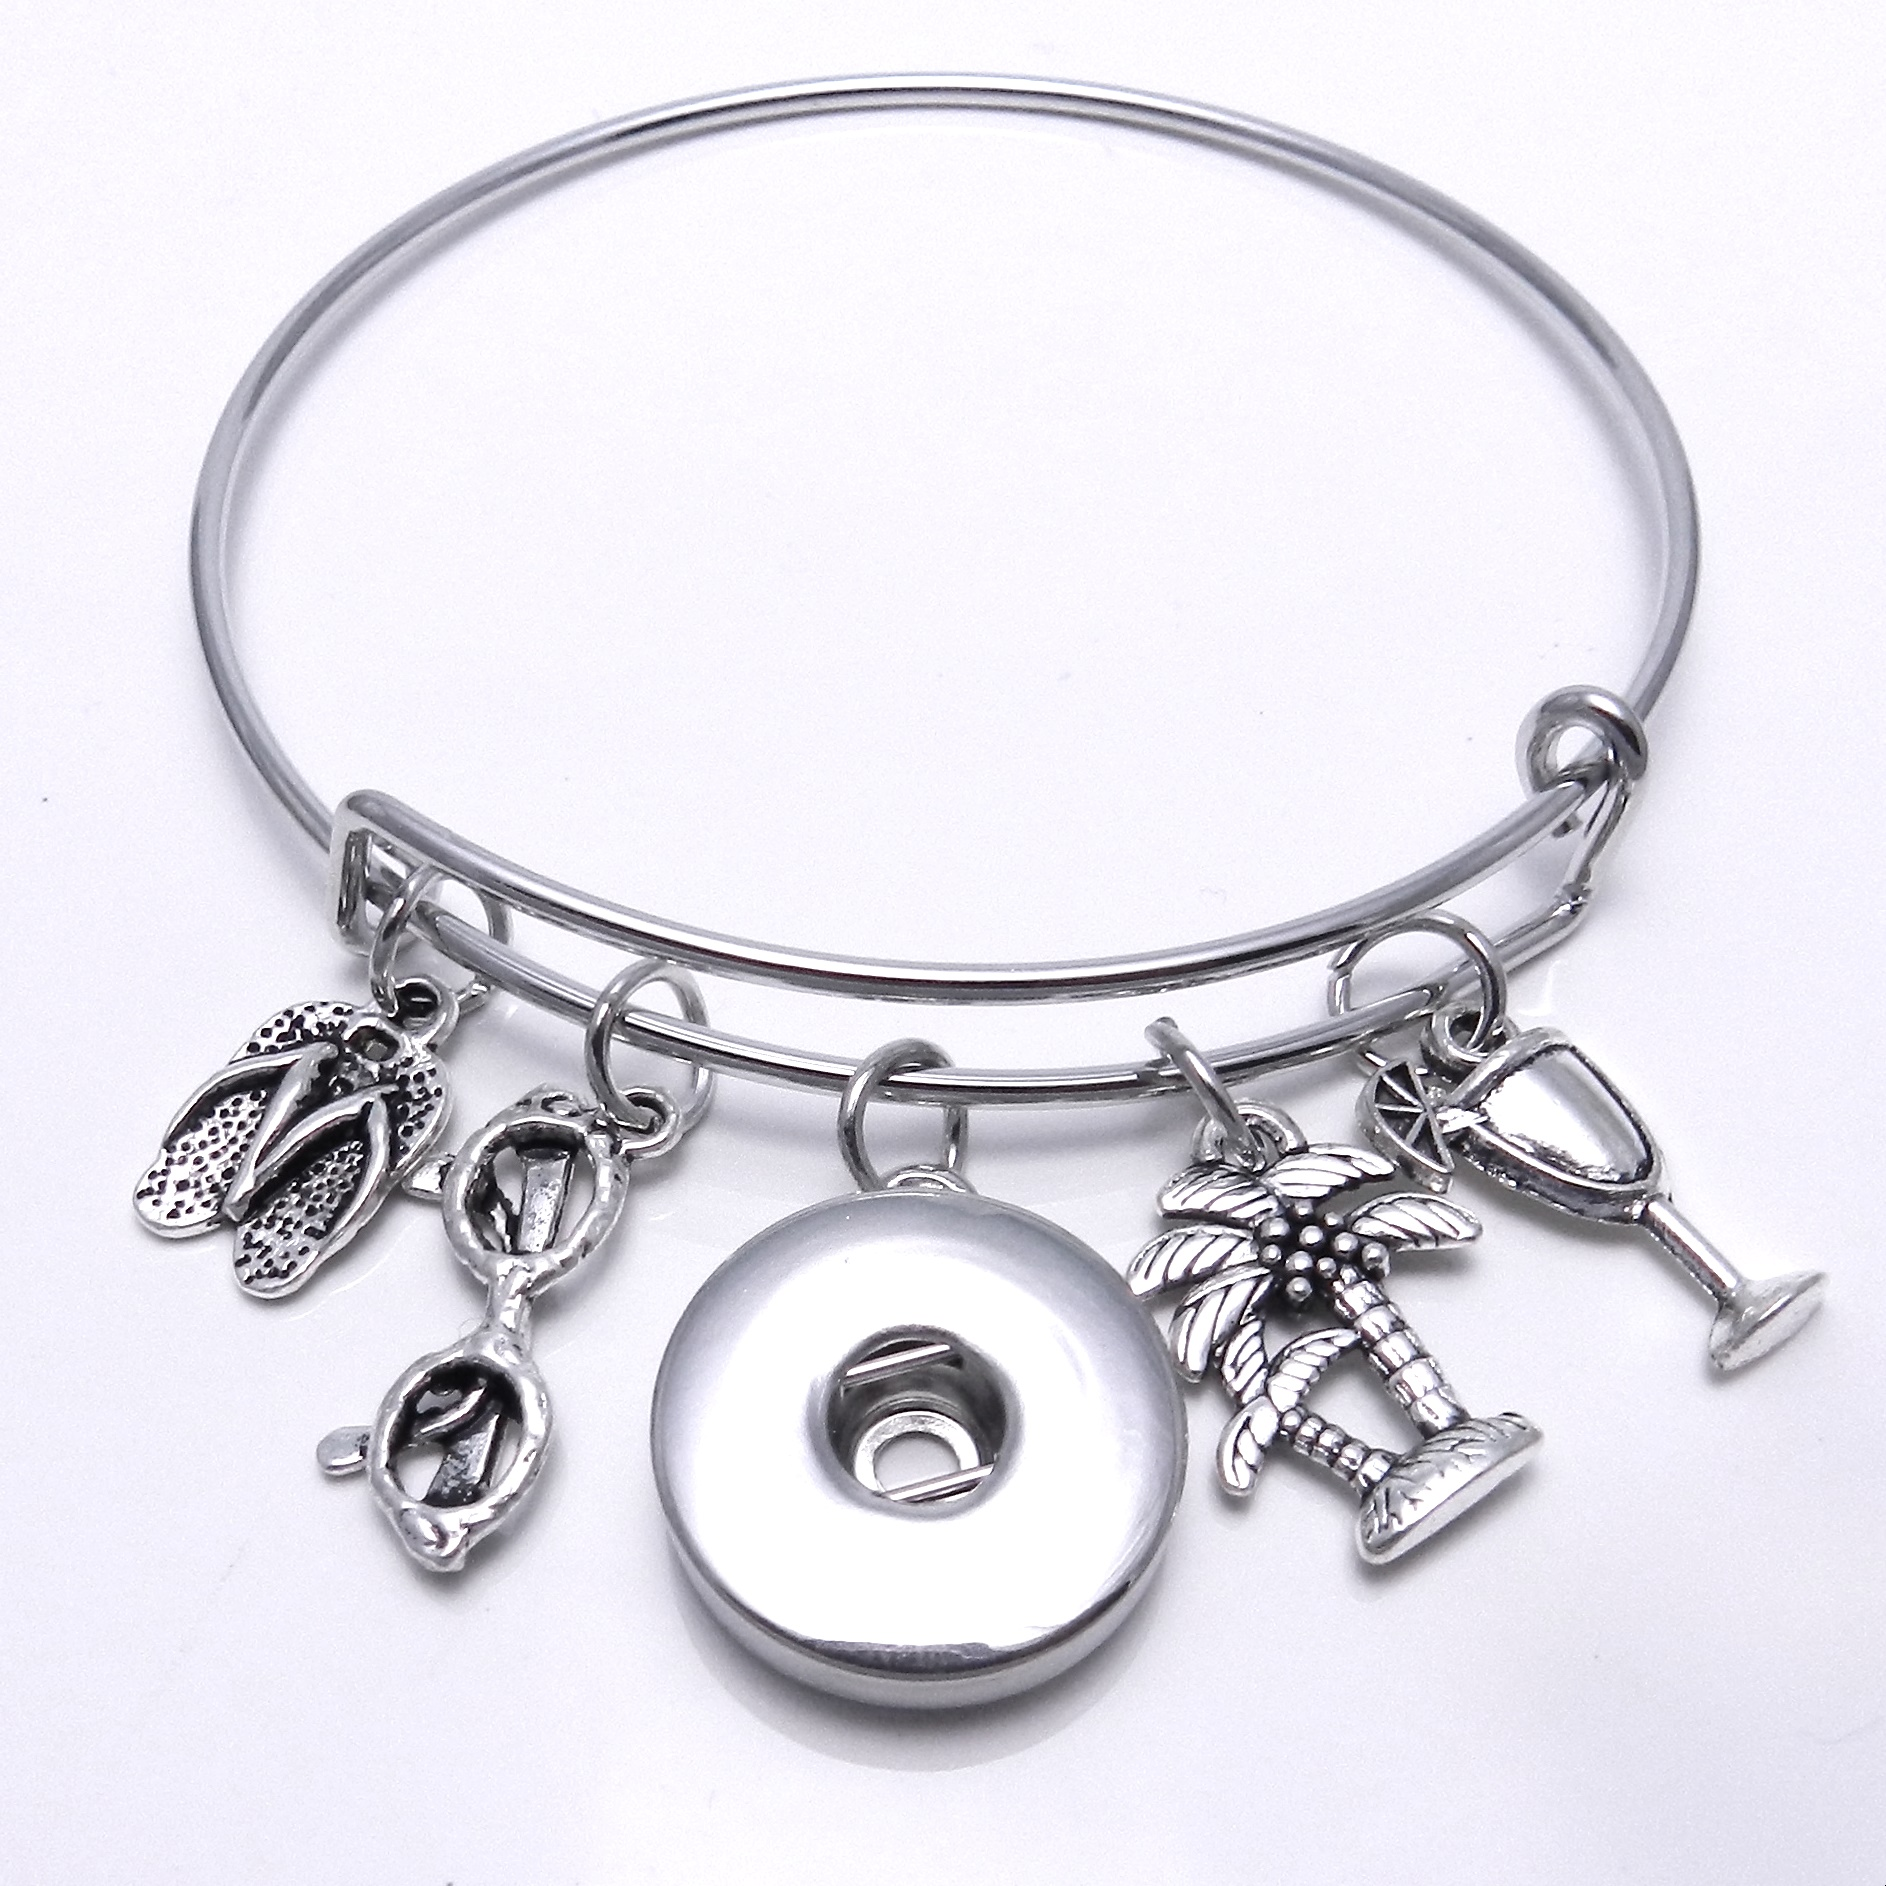 Snap Jewelry Wire Expandable Bangle - Flip Flop, Palm Tree,&...